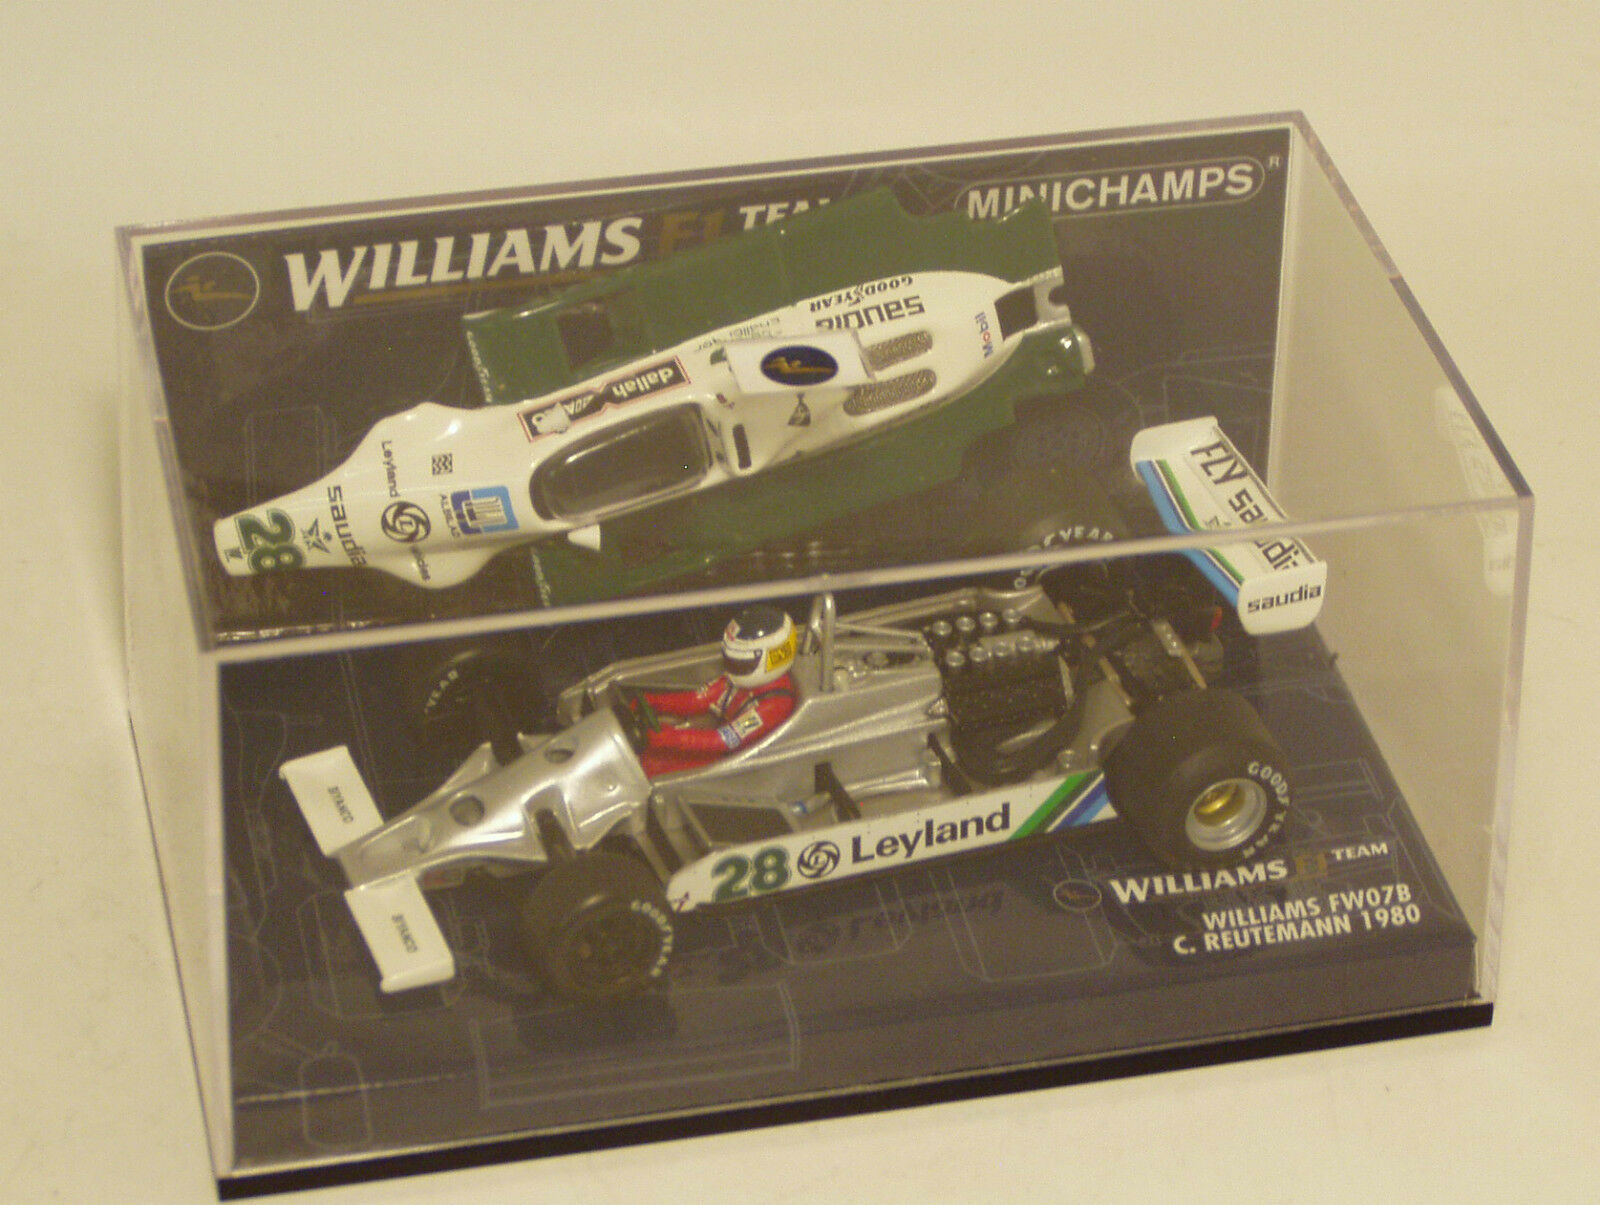 1 43 Williams  FW07B Tag Saudia Leyland 1980 voitureLOS REUTEhommeN  économiser 50% -75% de réduction